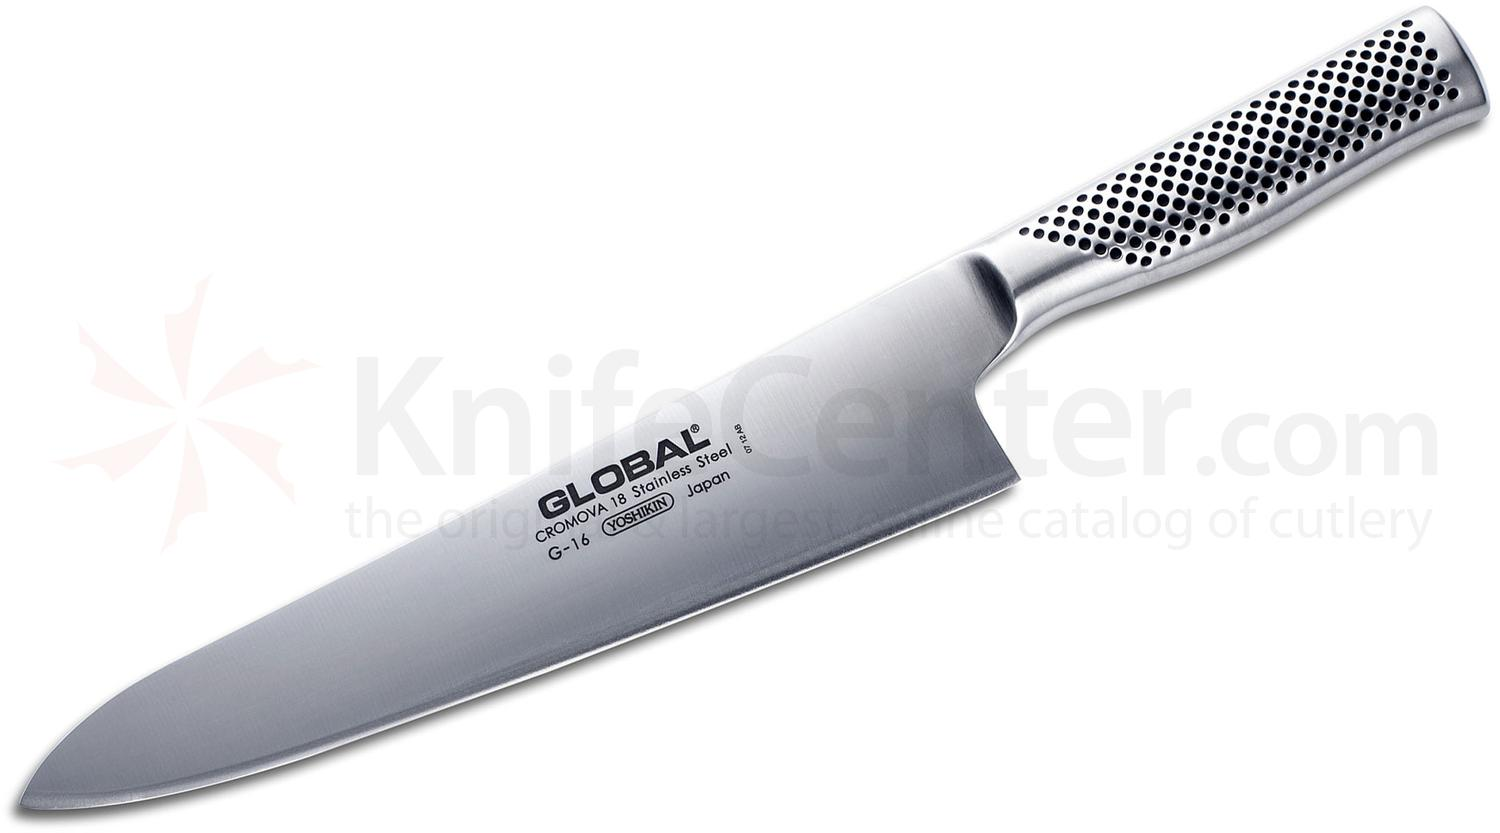 Global G-16 Kitchen 10 inch Cook Knife